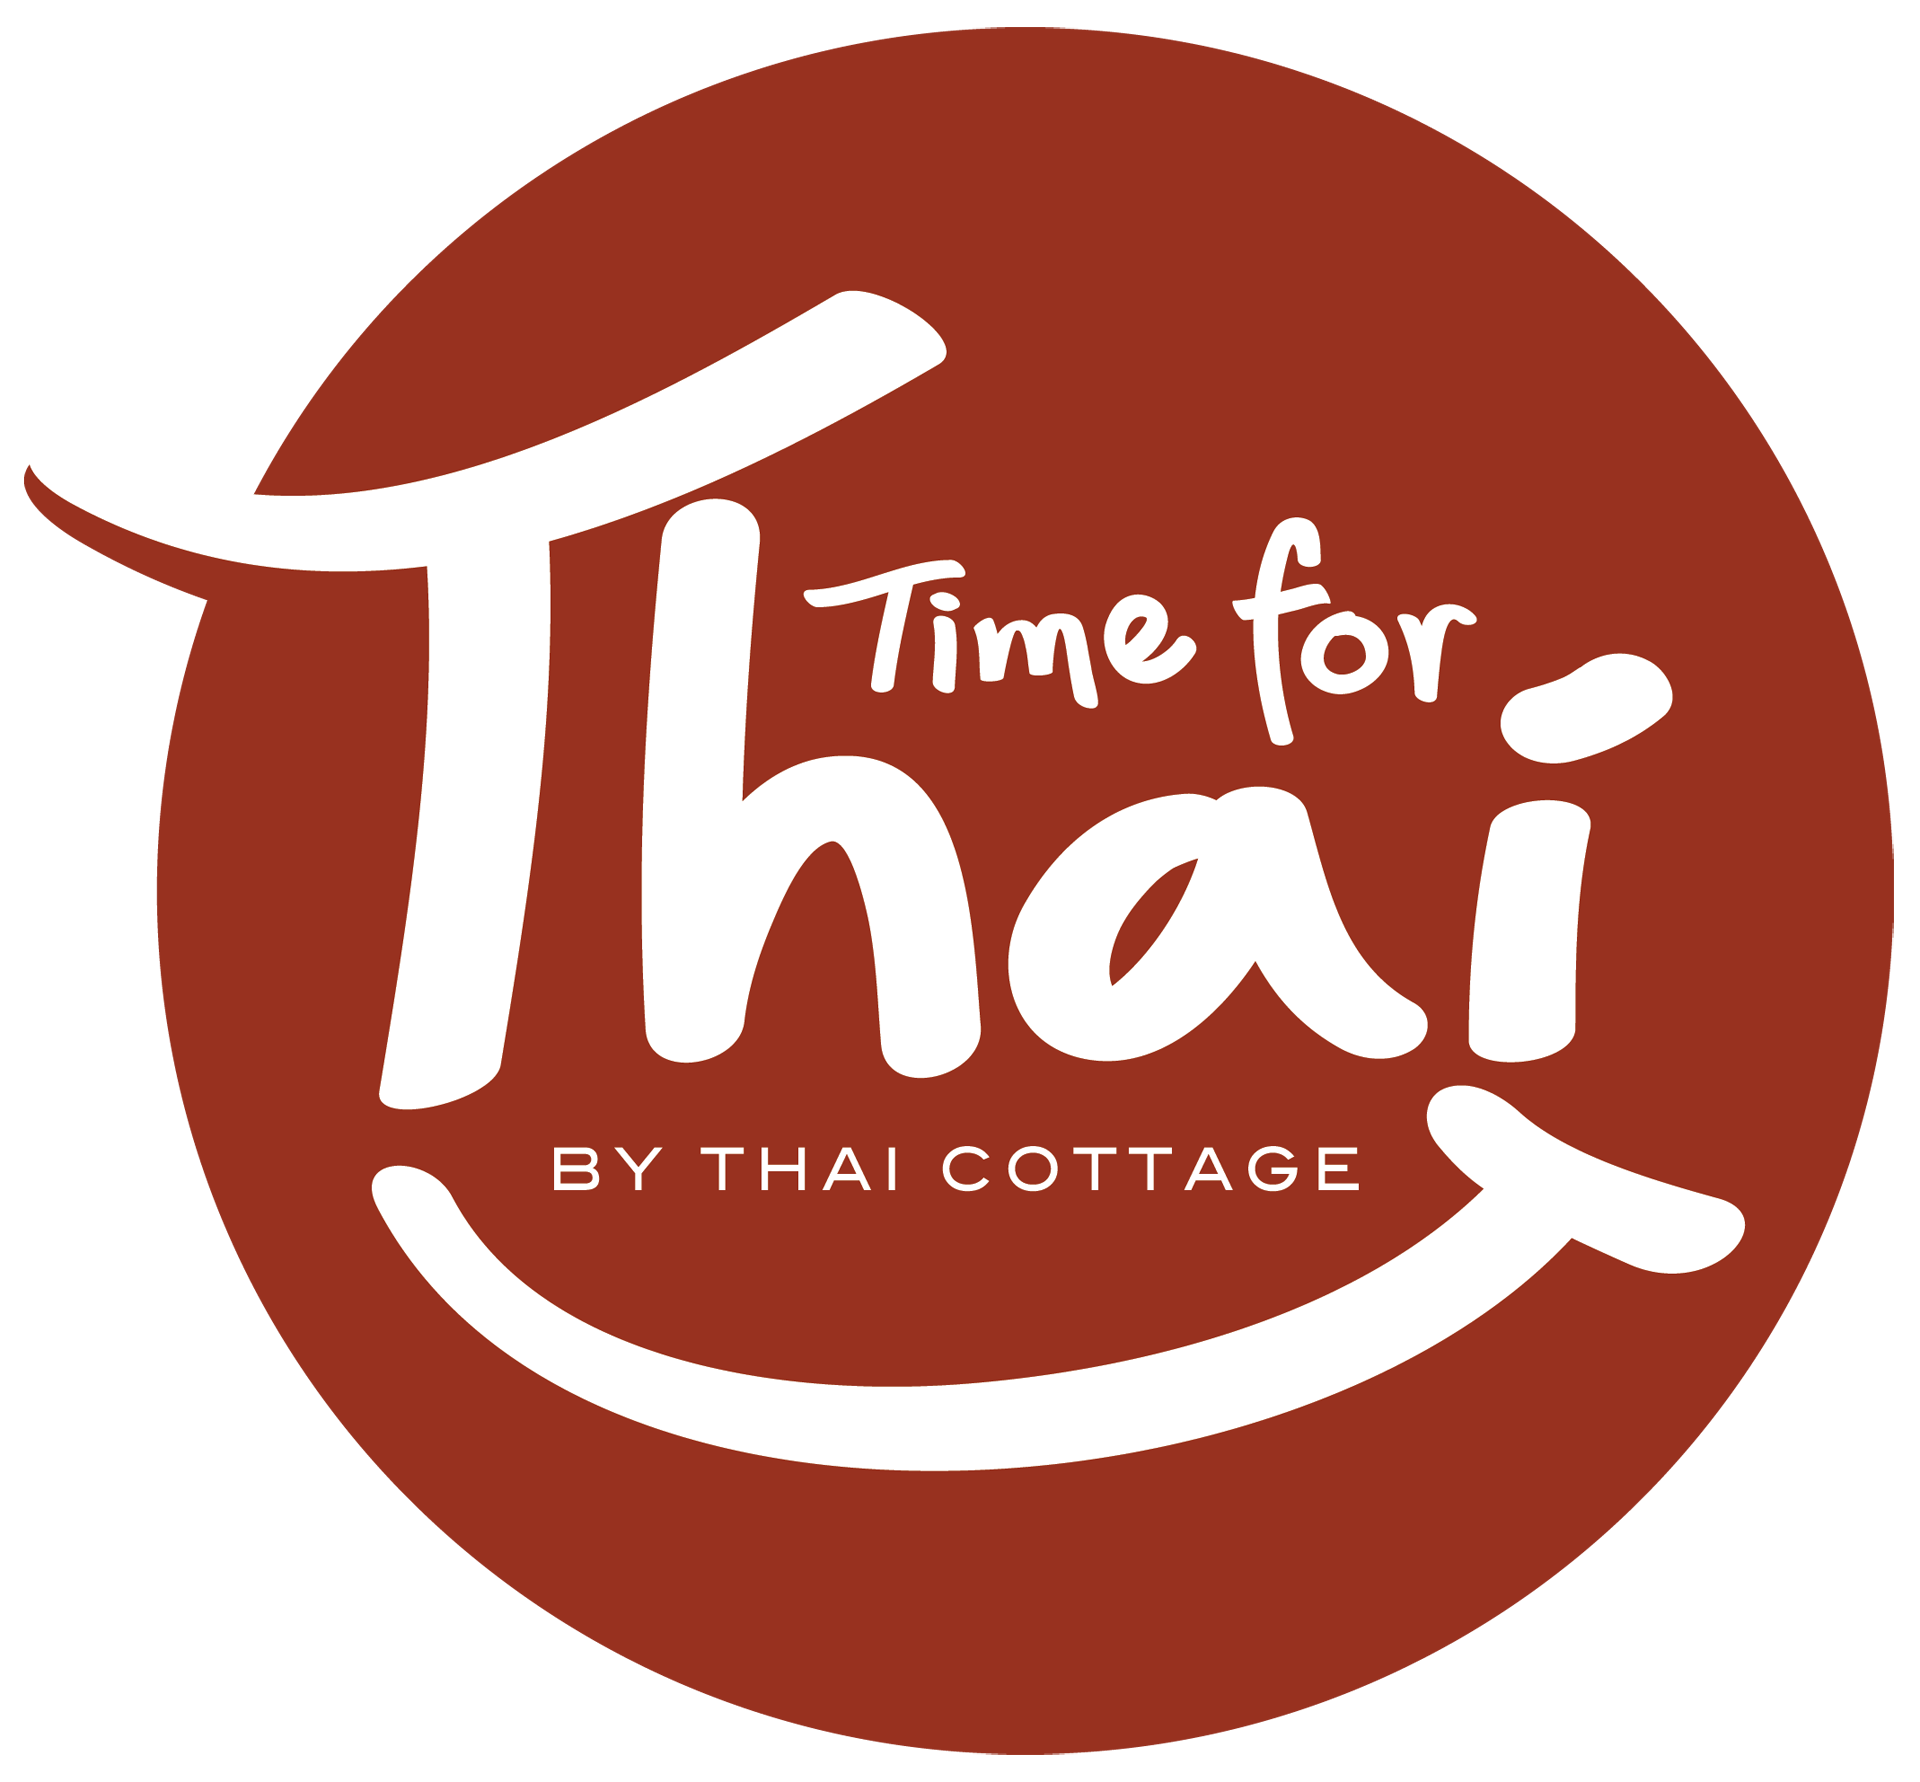 Time for Thai Home